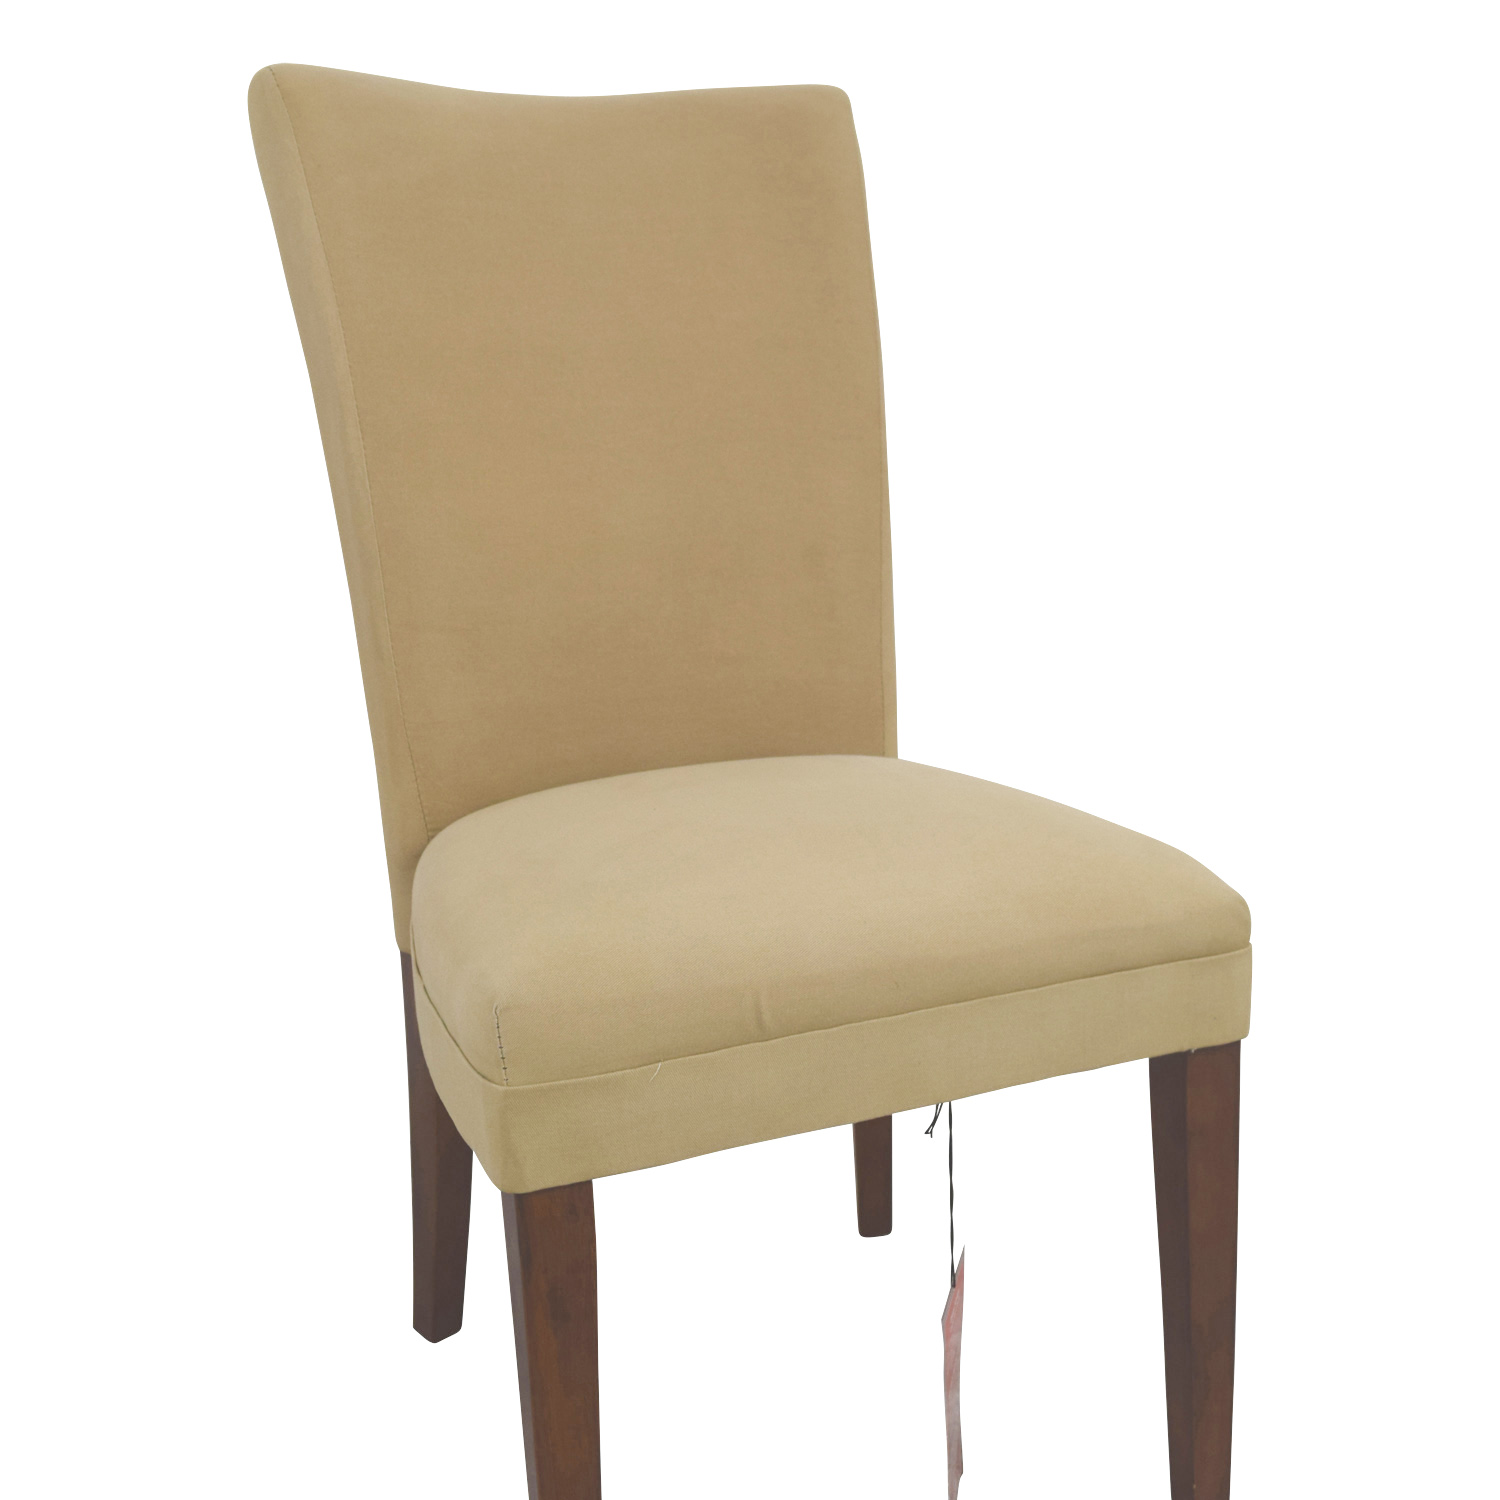 buy Coaster High Back Tan Upholstered Chair Coaster Chairs